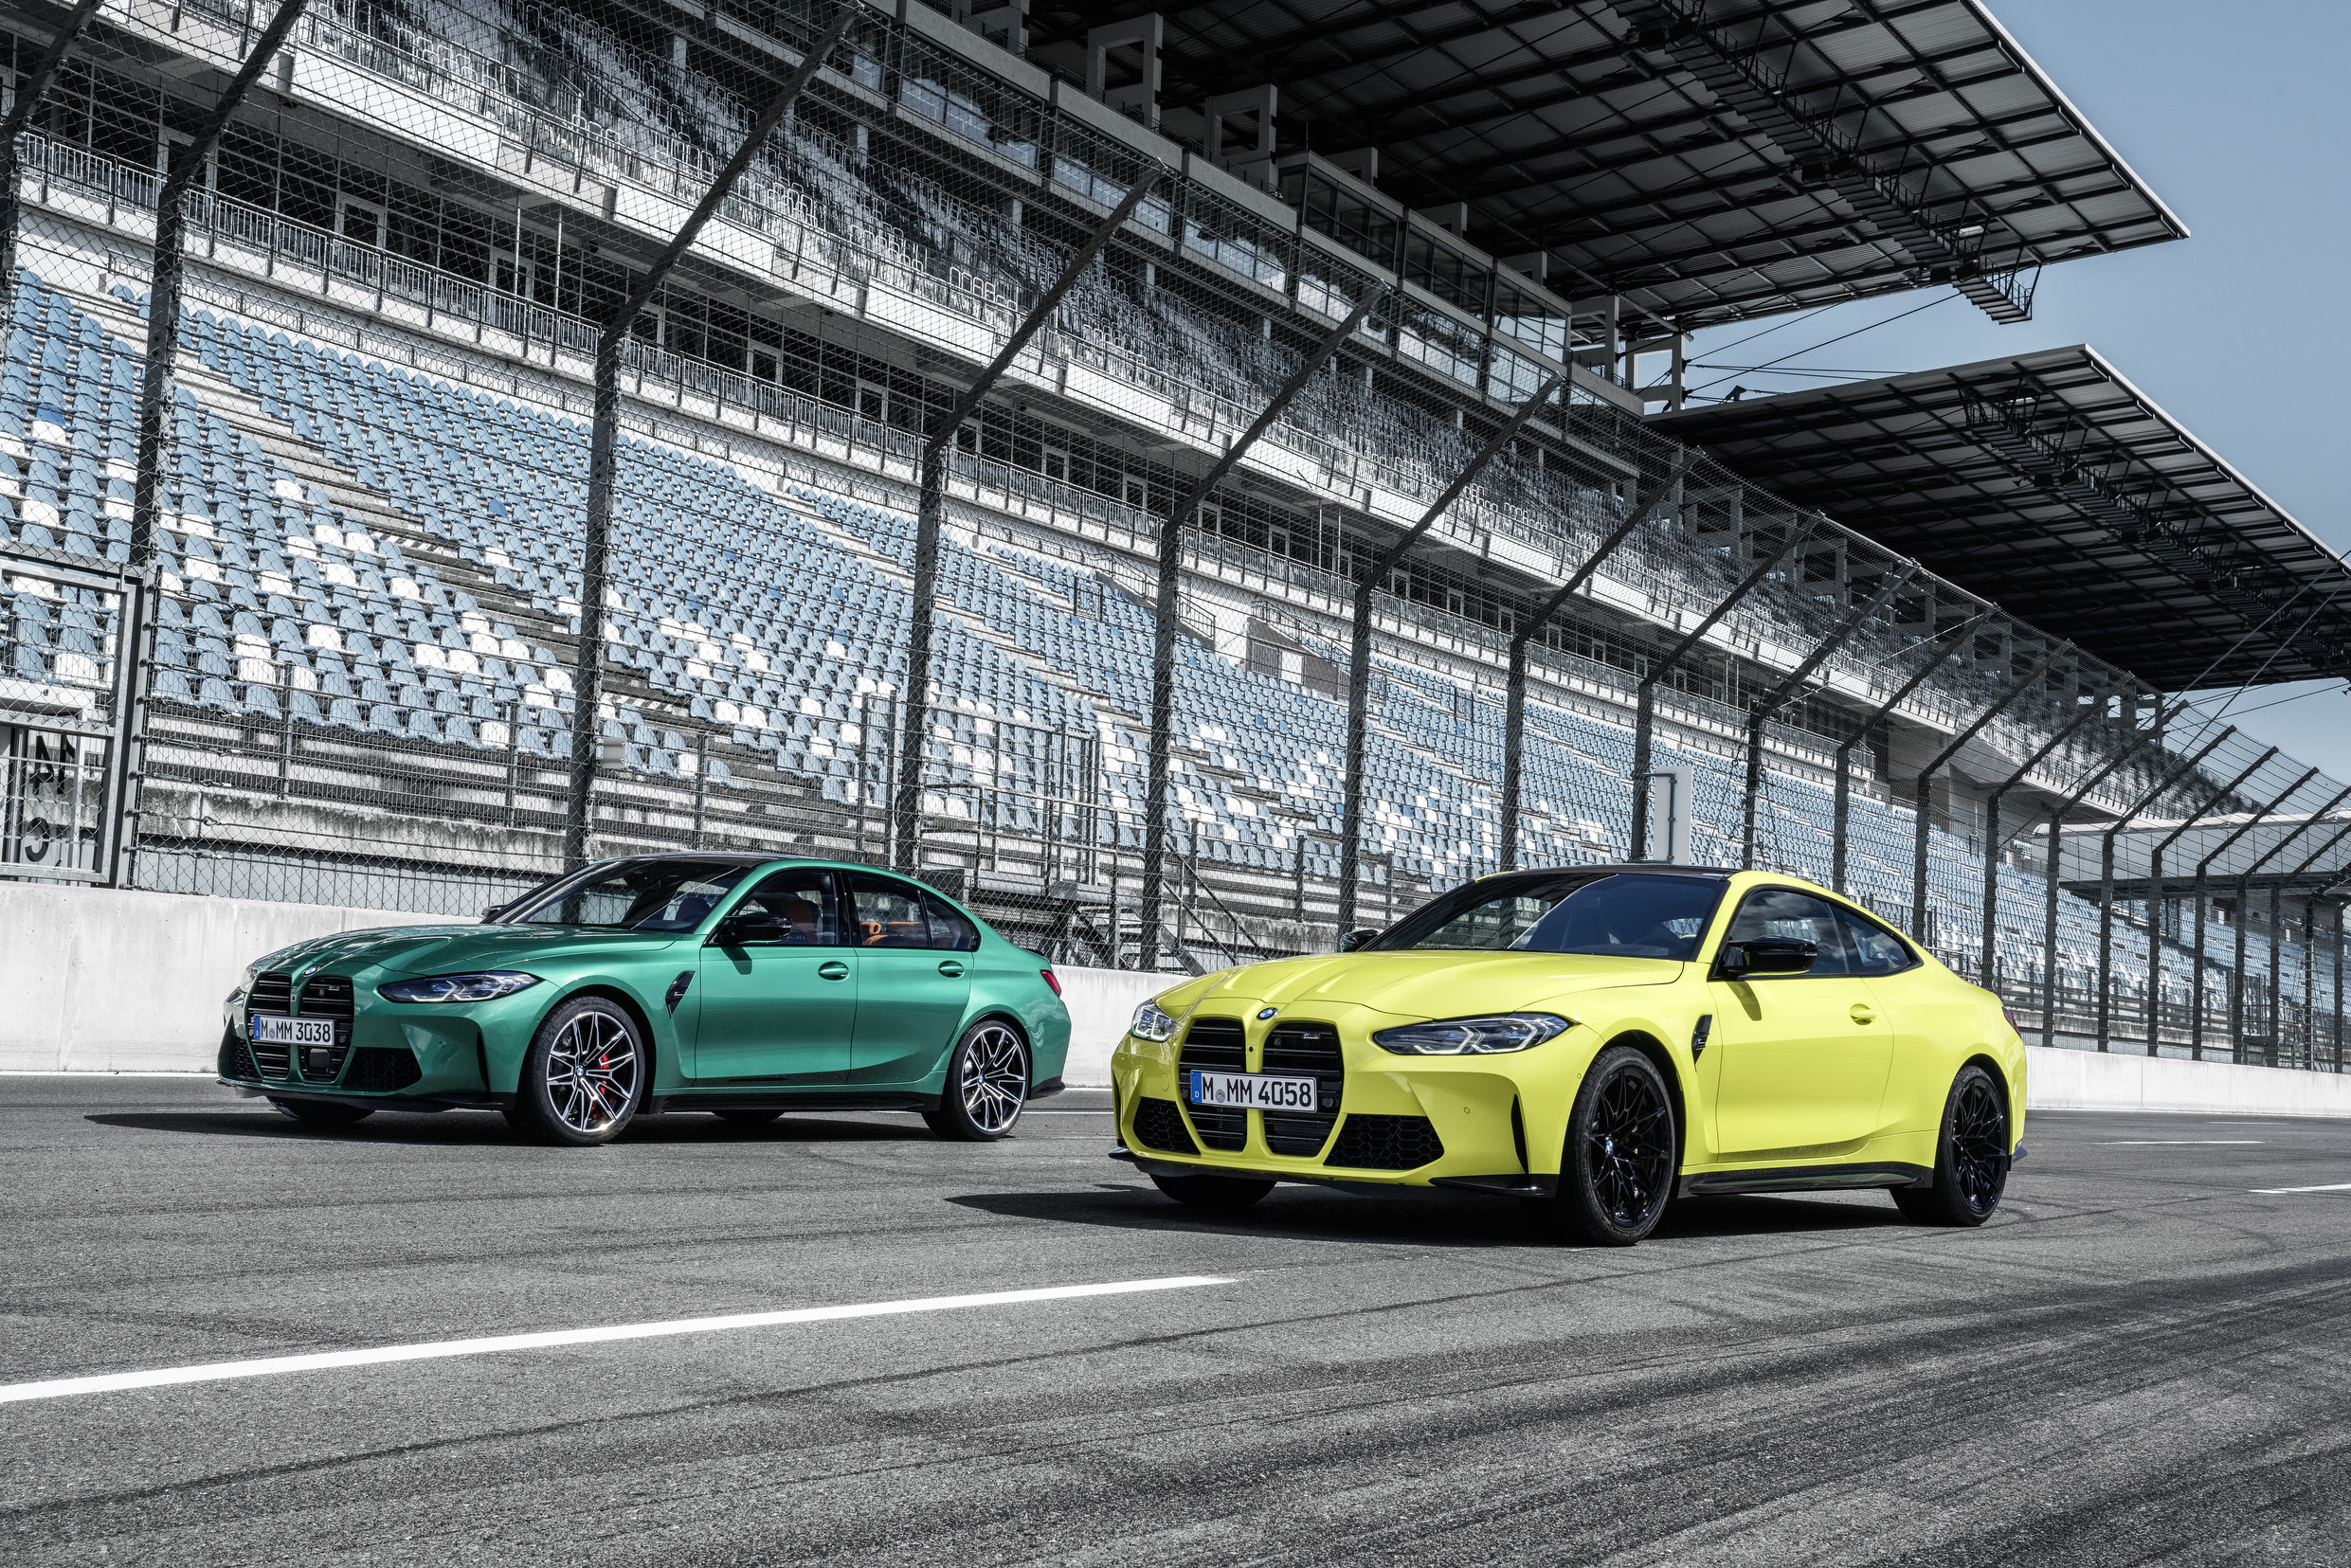 The new BMW M3 Sedan and M4 Coupé